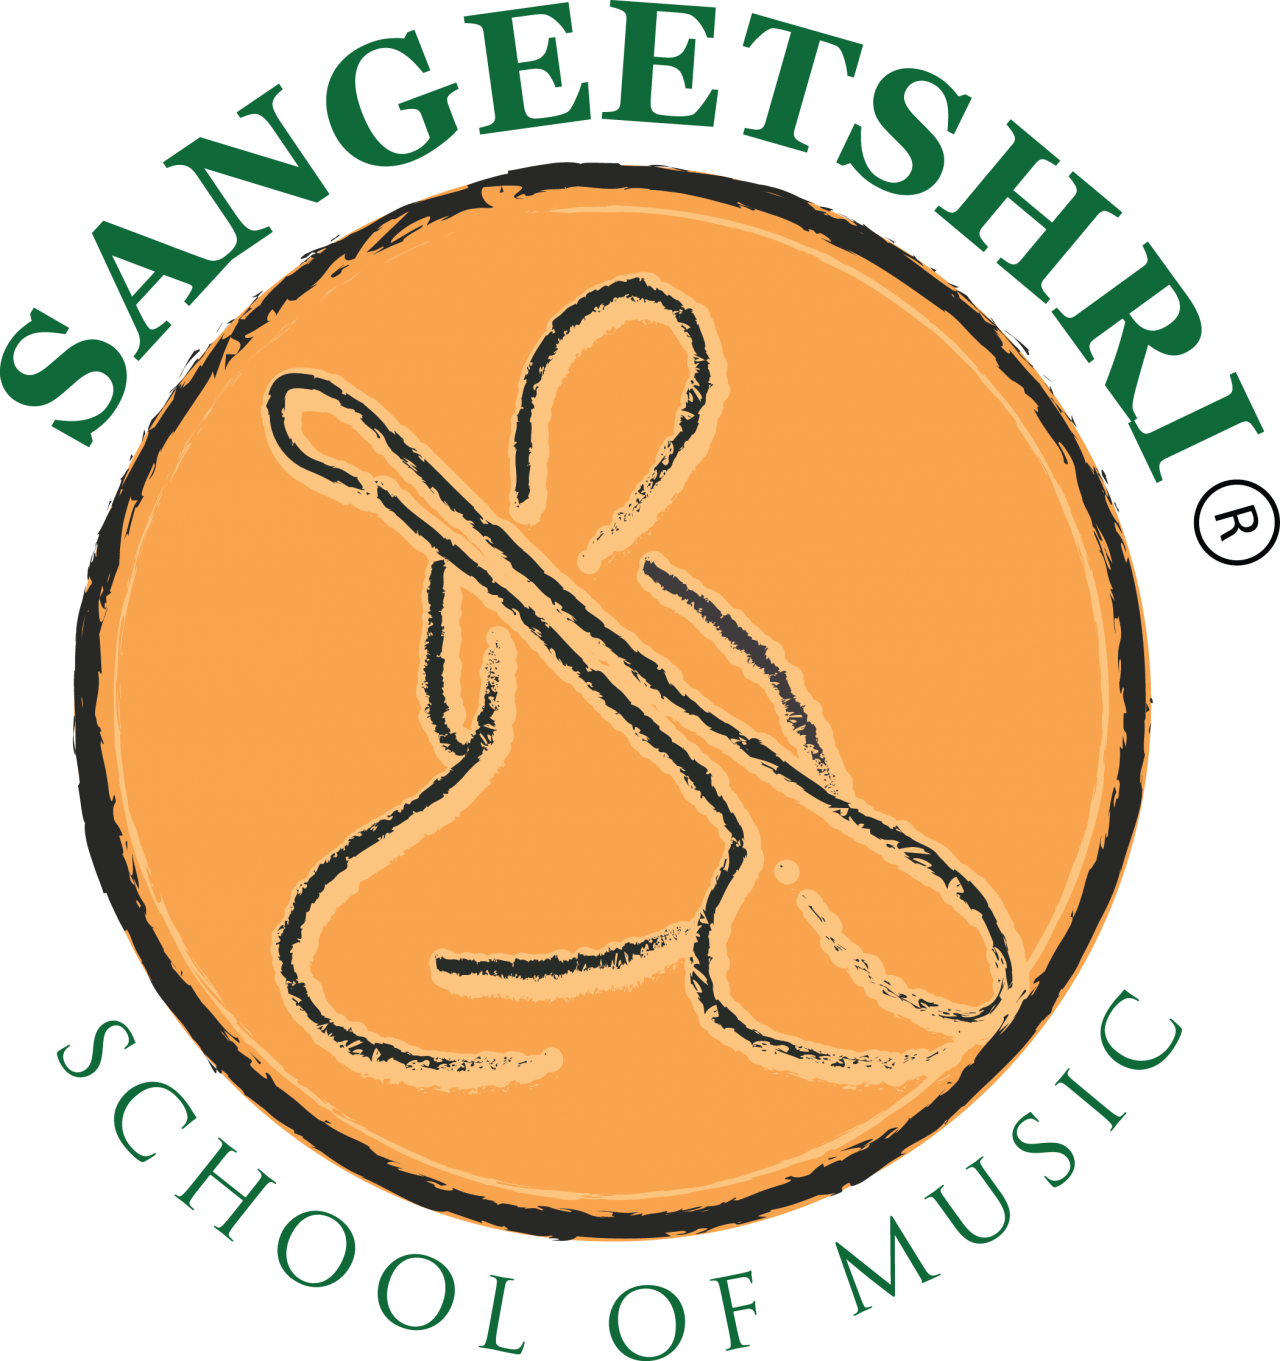 Sangeetshri School of Music